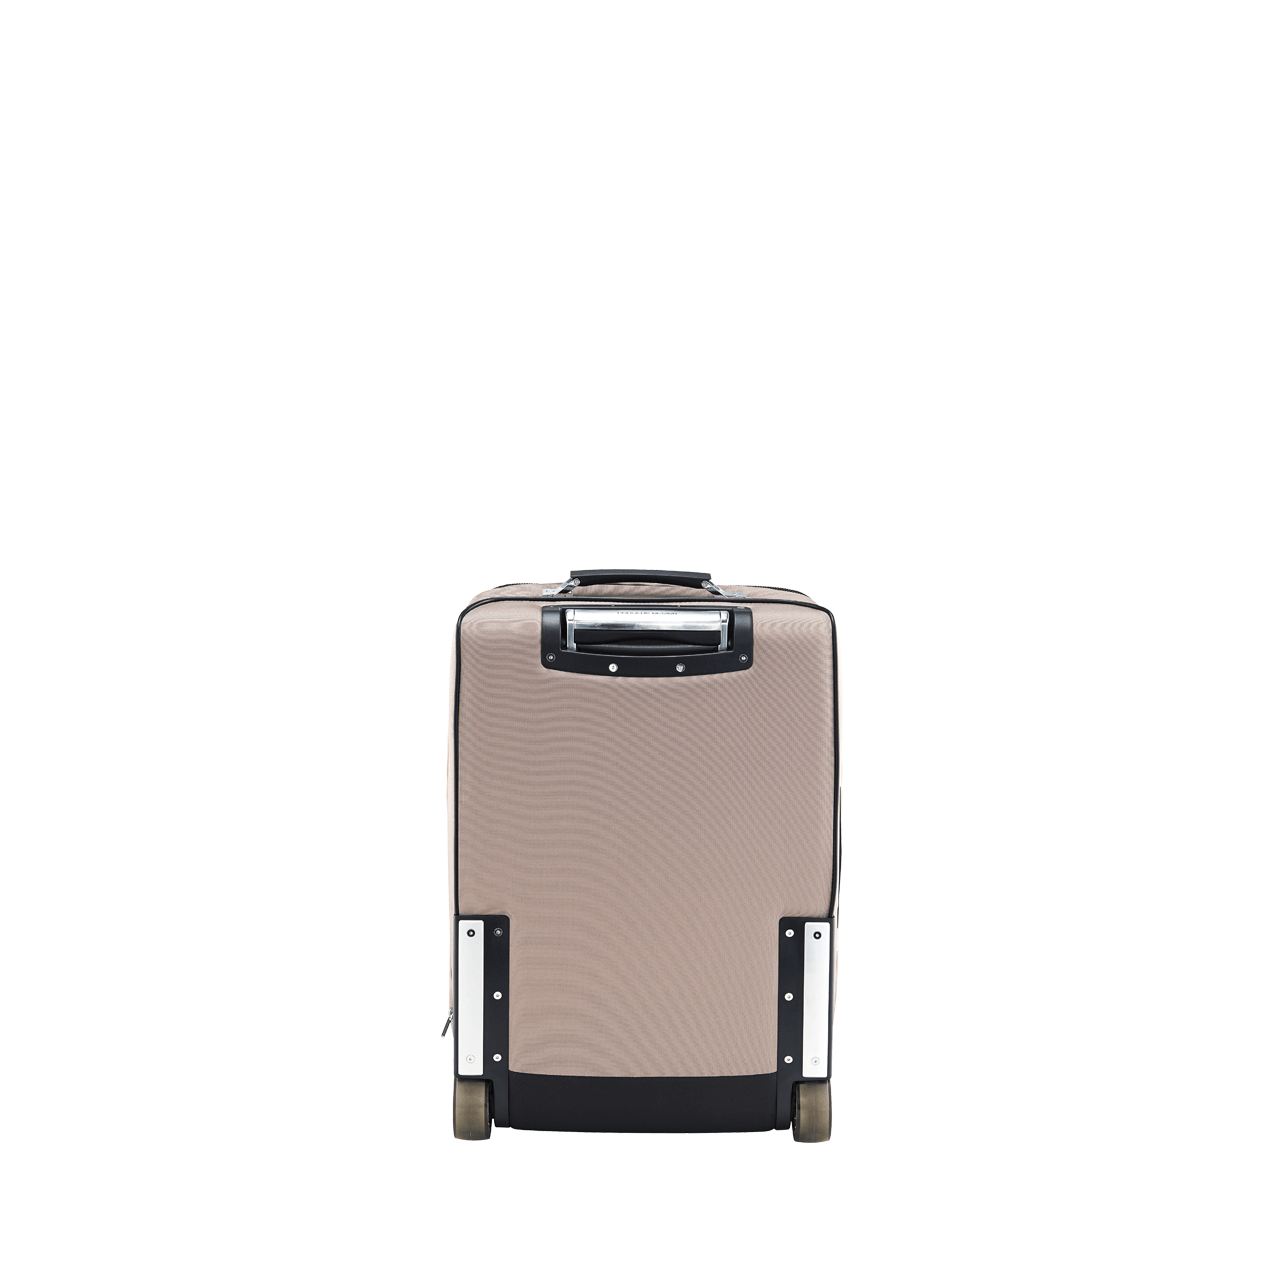 ROADSTER SOFTCASE SERIES TROLLEY 550 - фото 3